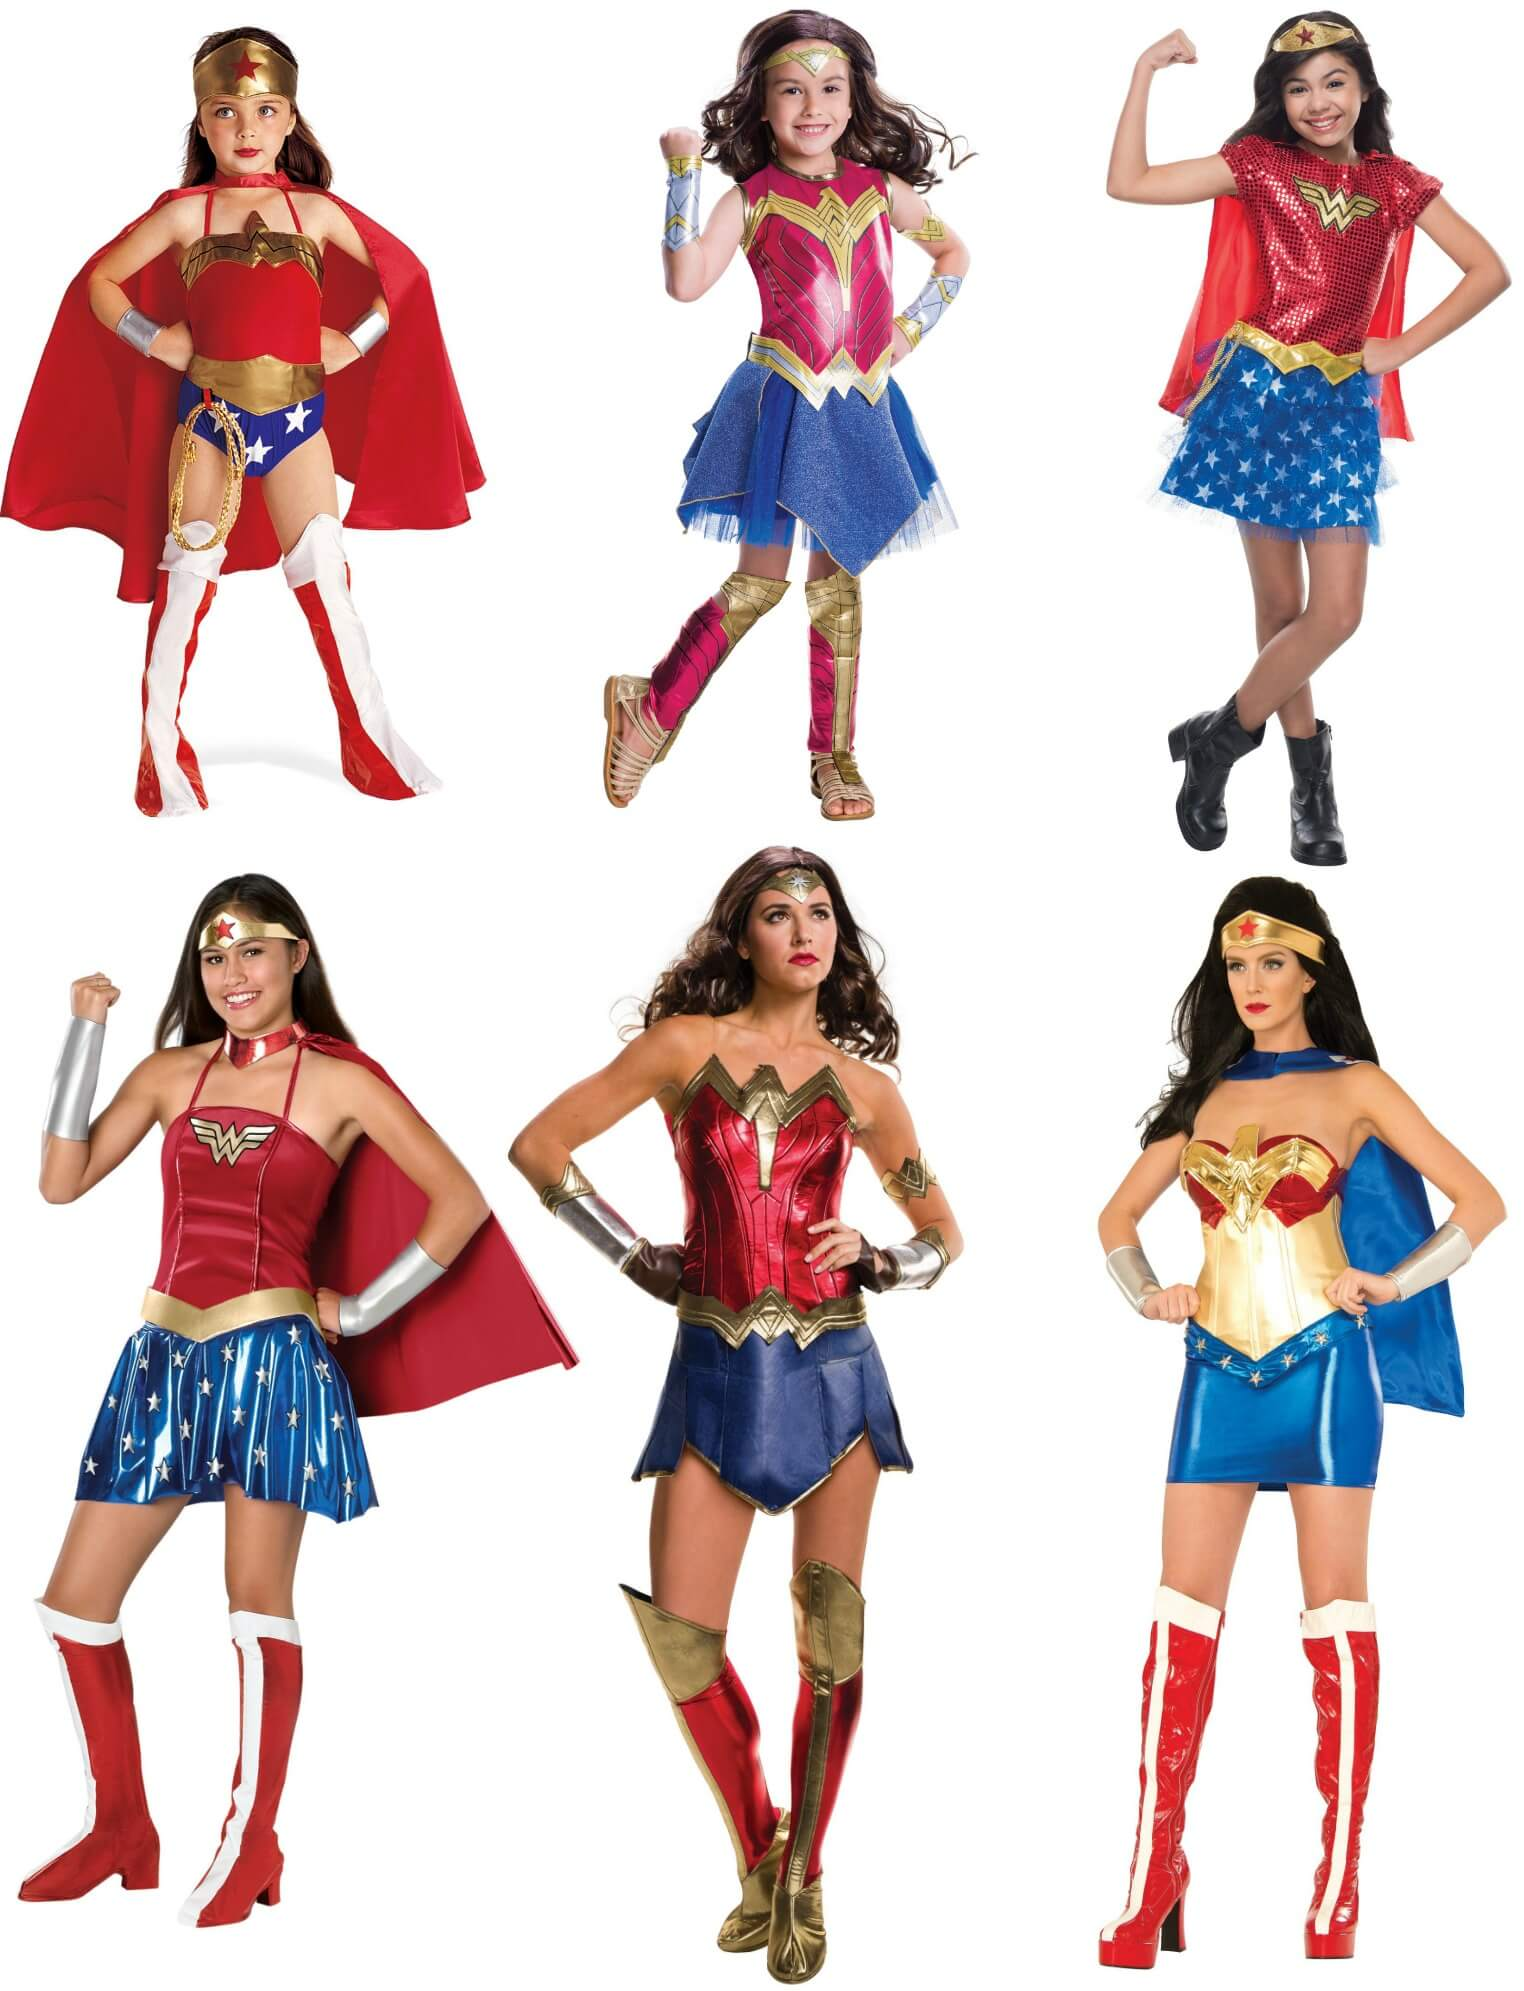 All ages Wonder Woman costumes  sc 1 st  Halloween Costumes & The Best Wonder Woman Posts on HalloweenCostumes.com - Halloween ...